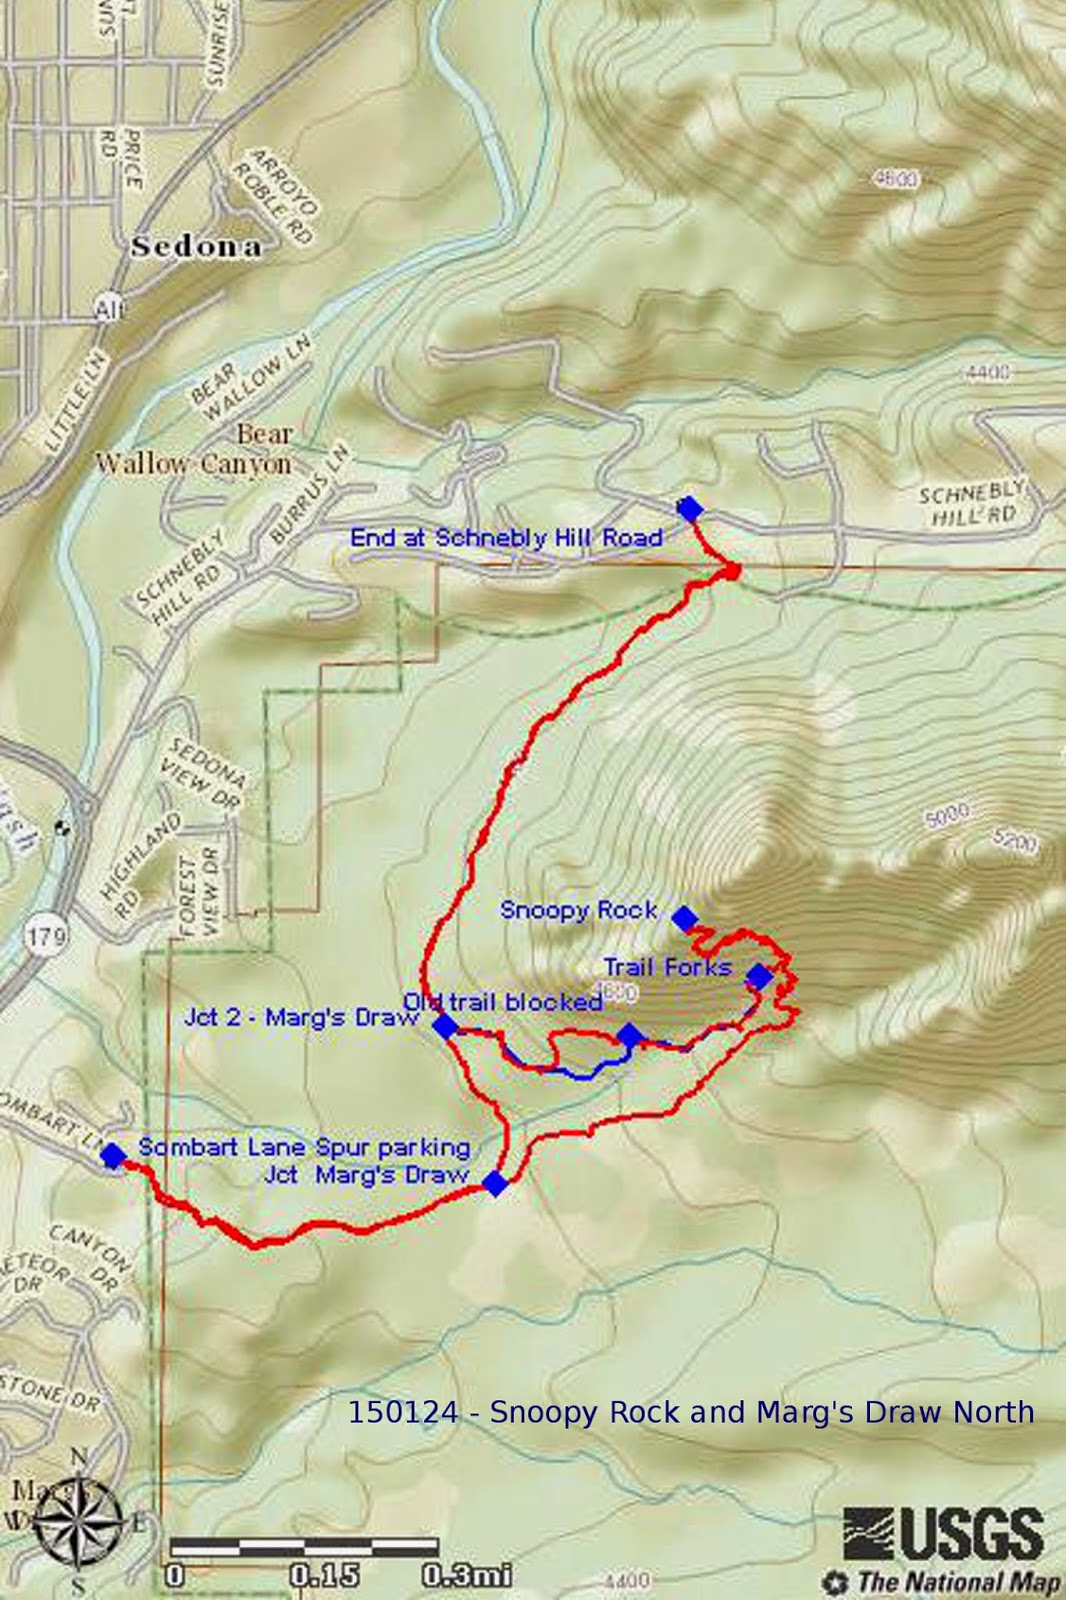 this hike was 4 9 miles total the highest elevation was 4952 feet and the total ascent was 1065 feet